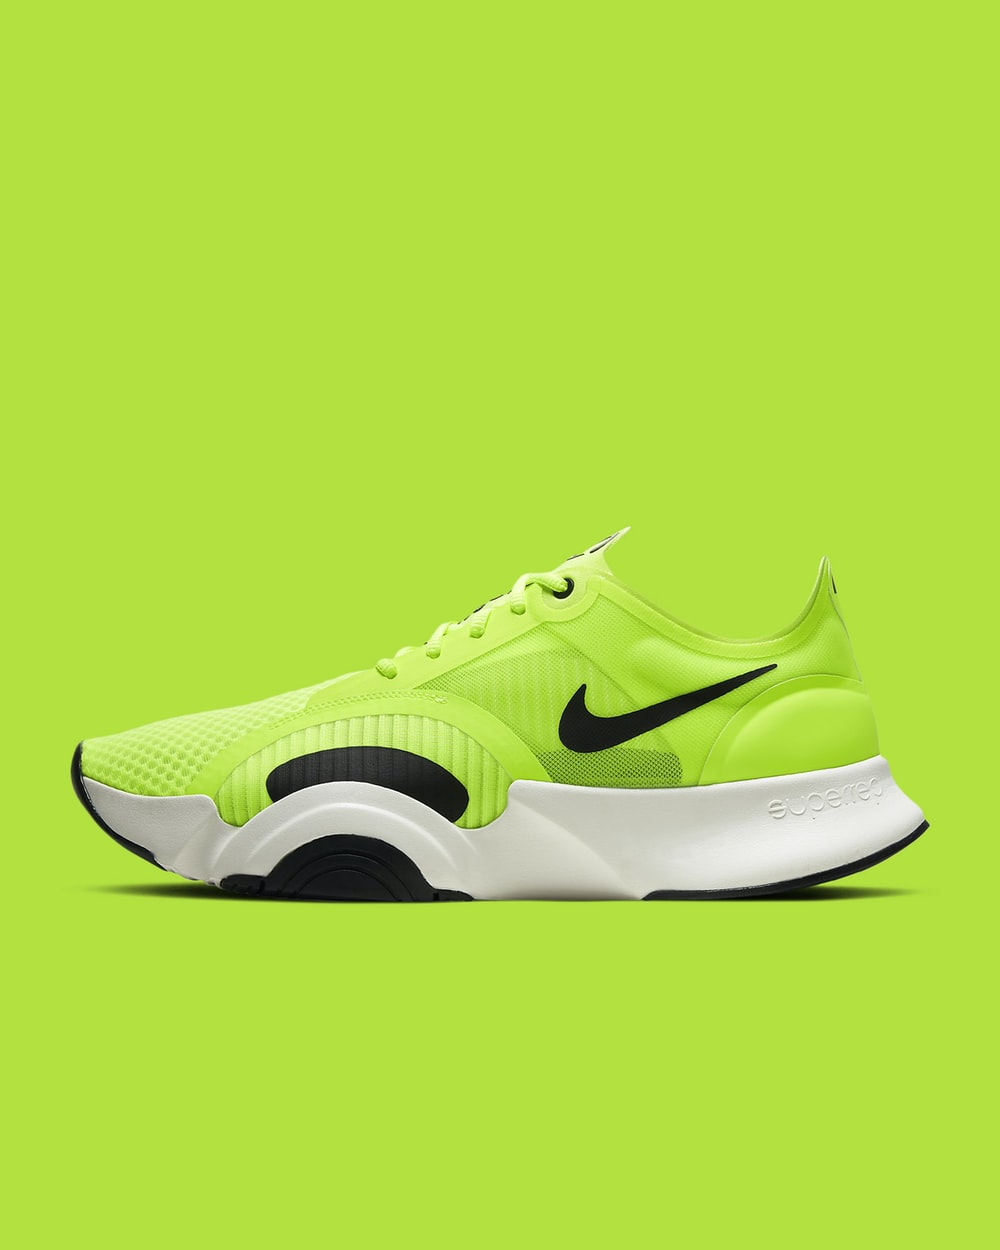 green and black nike athletic shoe